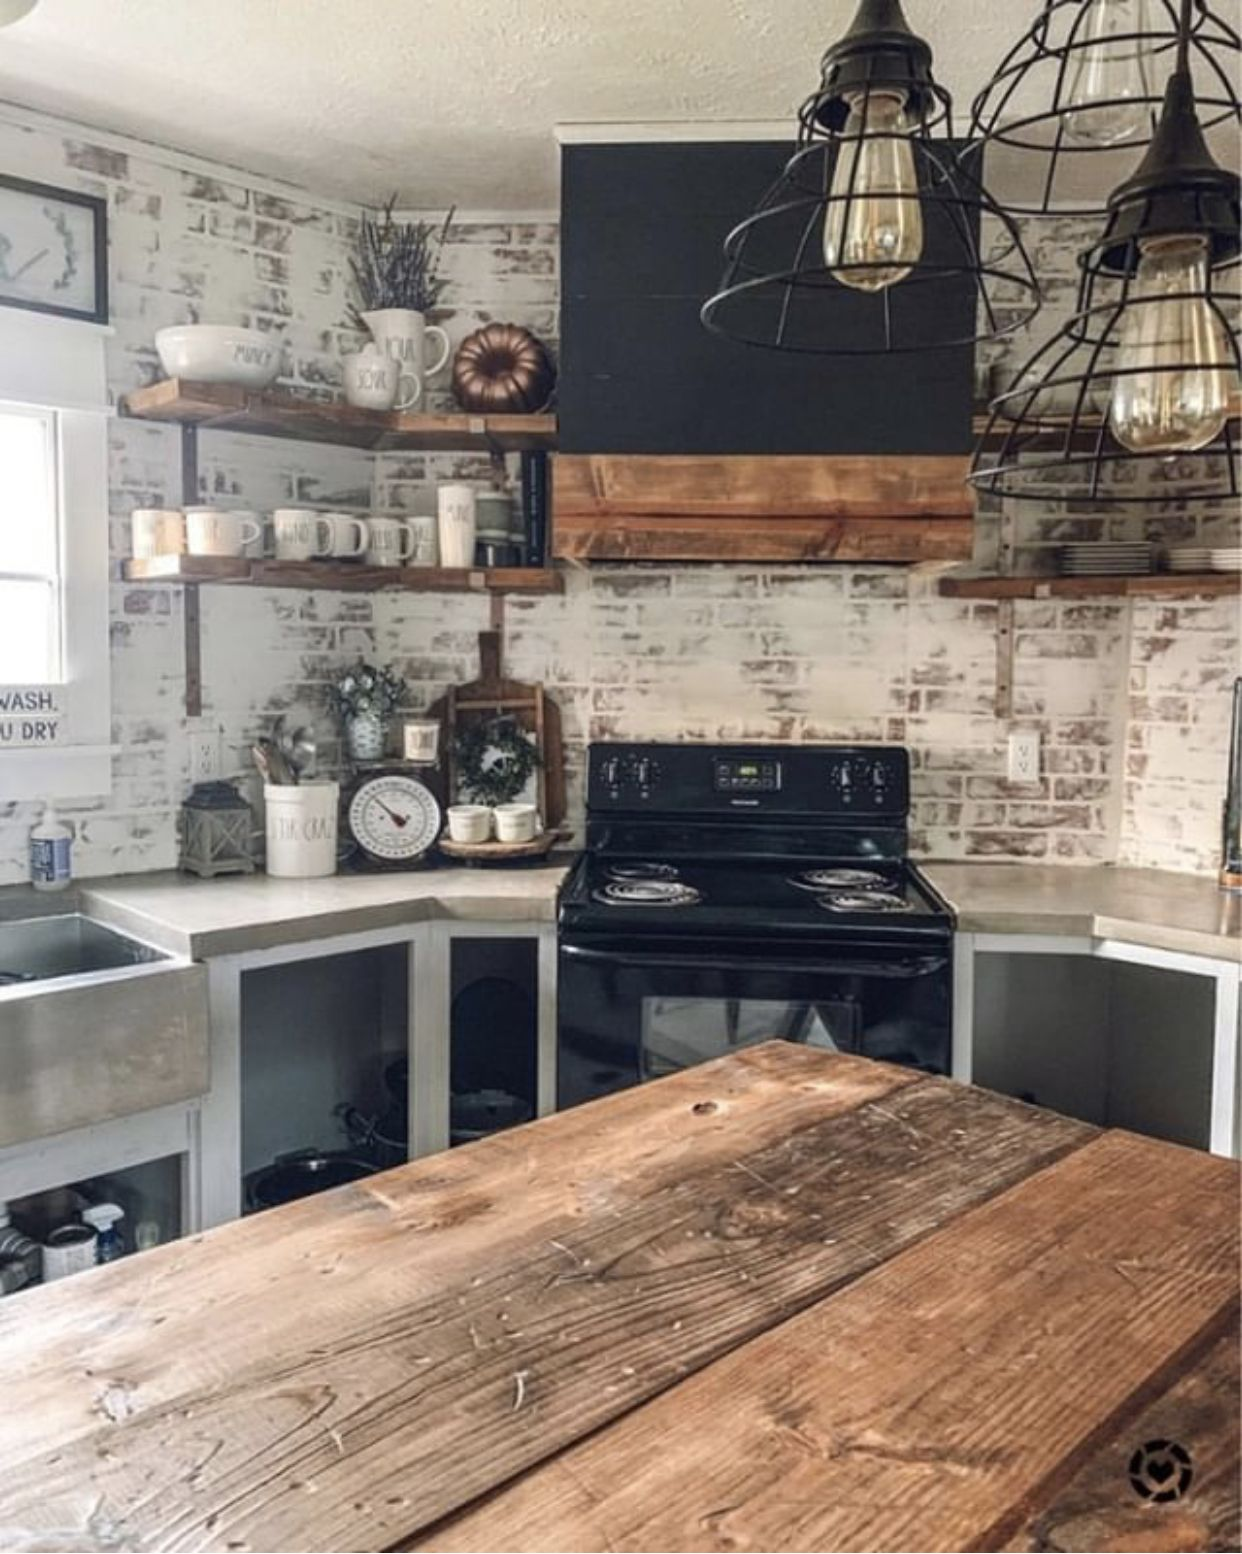 Rustic Country Kitchen Rustic Kitchen Design Rustic Kitchen Rustic Country Kitchens